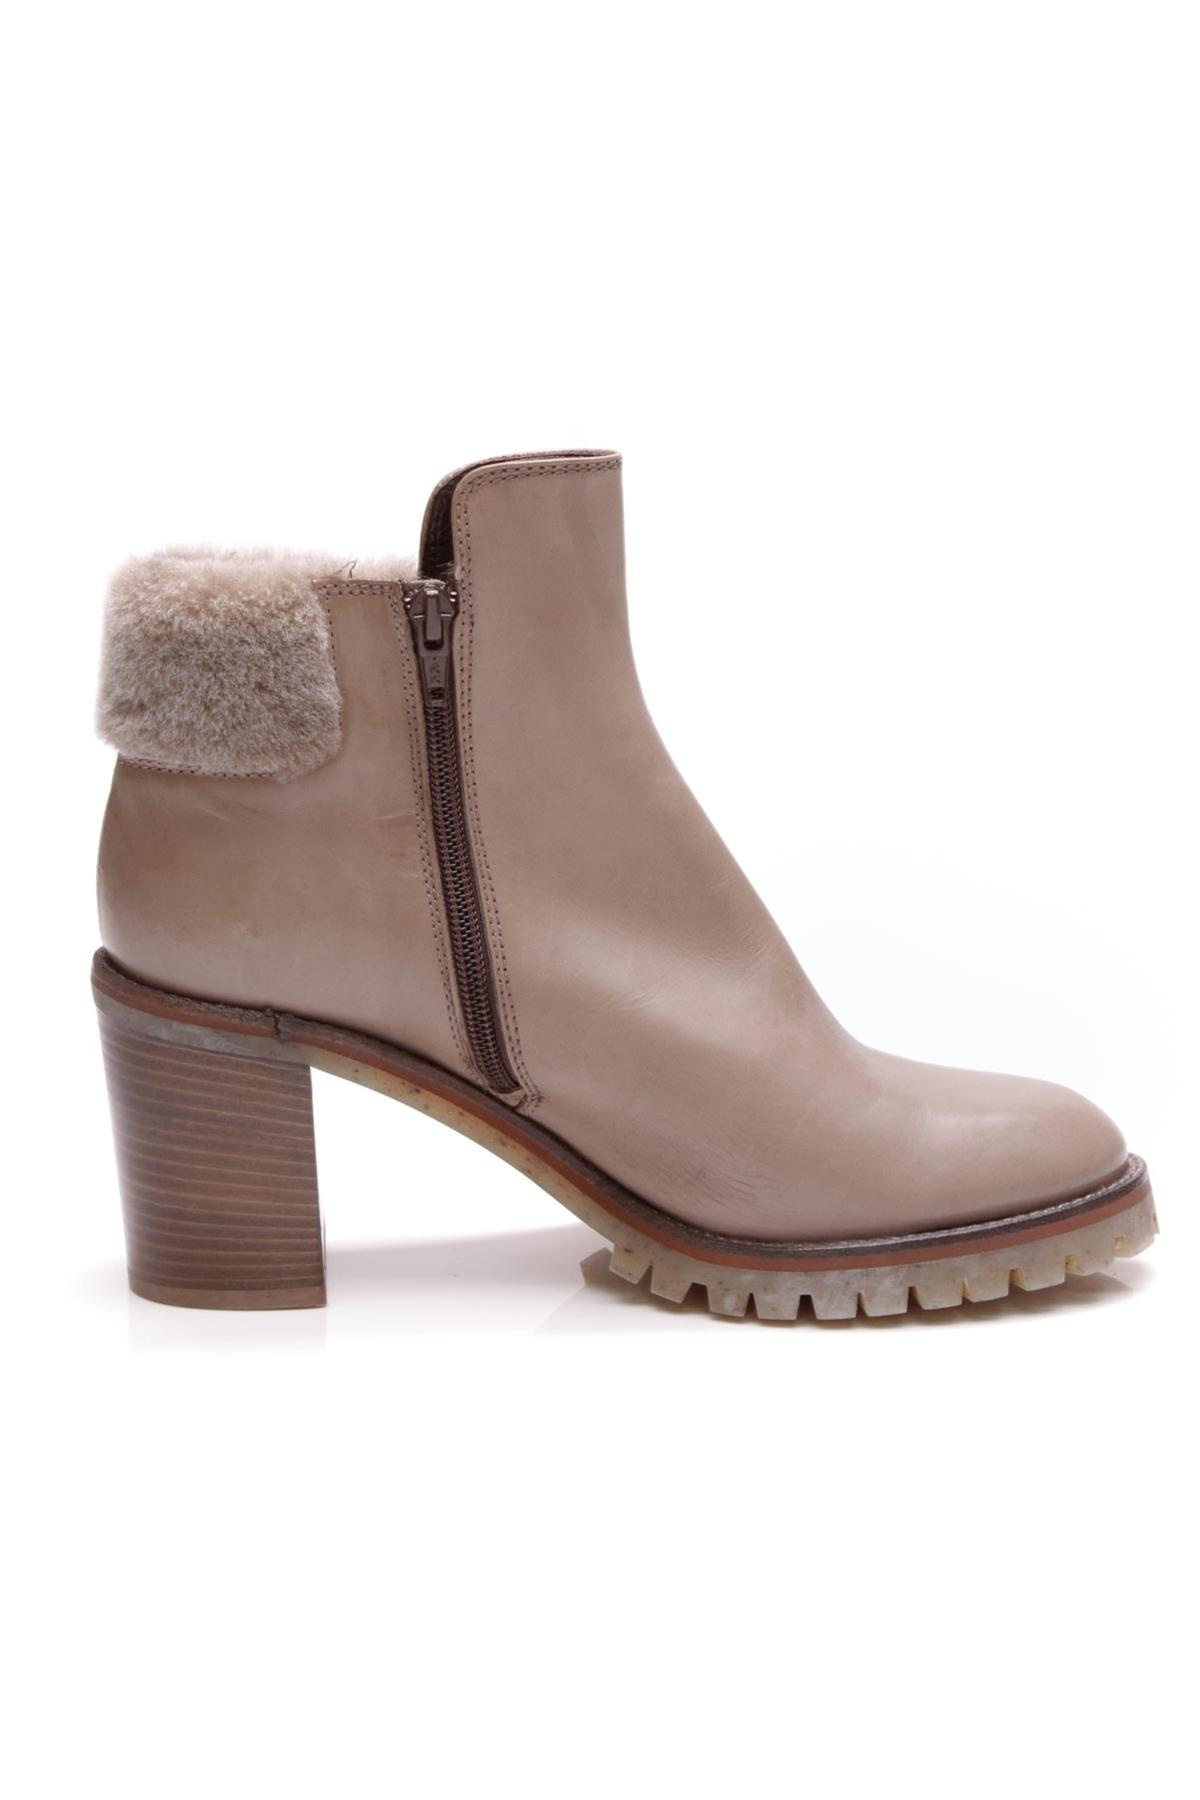 collections for sale AGL Fur-Trimmed Ankle Boots countdown package cheap price ouHdn1FvnM